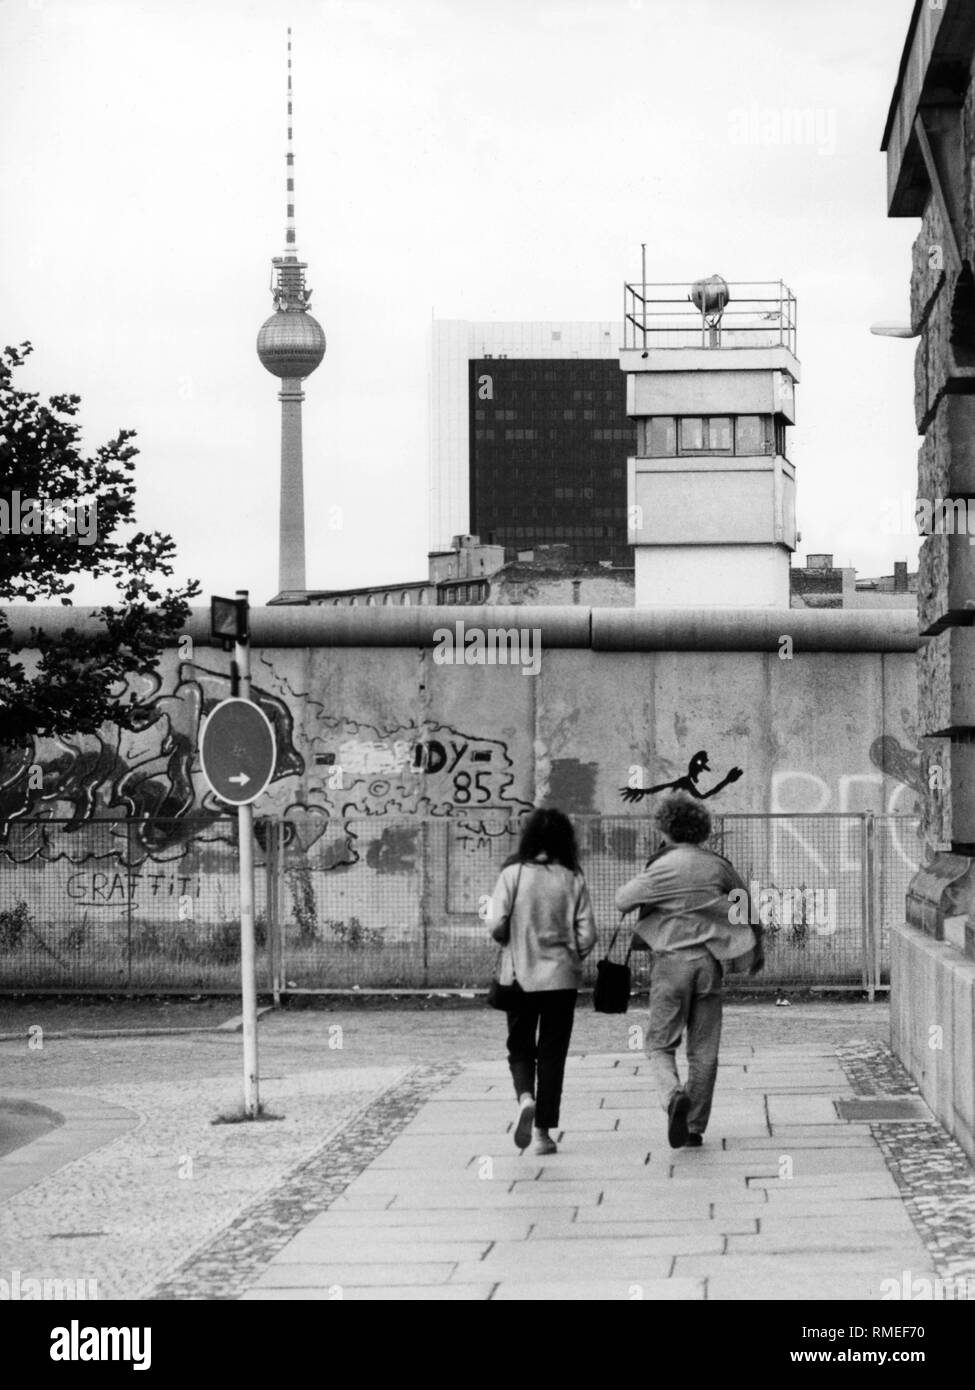 A couple walks towards the Berlin Wall. Behind the Wall, the picture shows a watchtower of the GDR border patrol and the Berlin Television Tower.  Berlin Wall from 1980 until ctober 1989, the, Germany - Stock Image